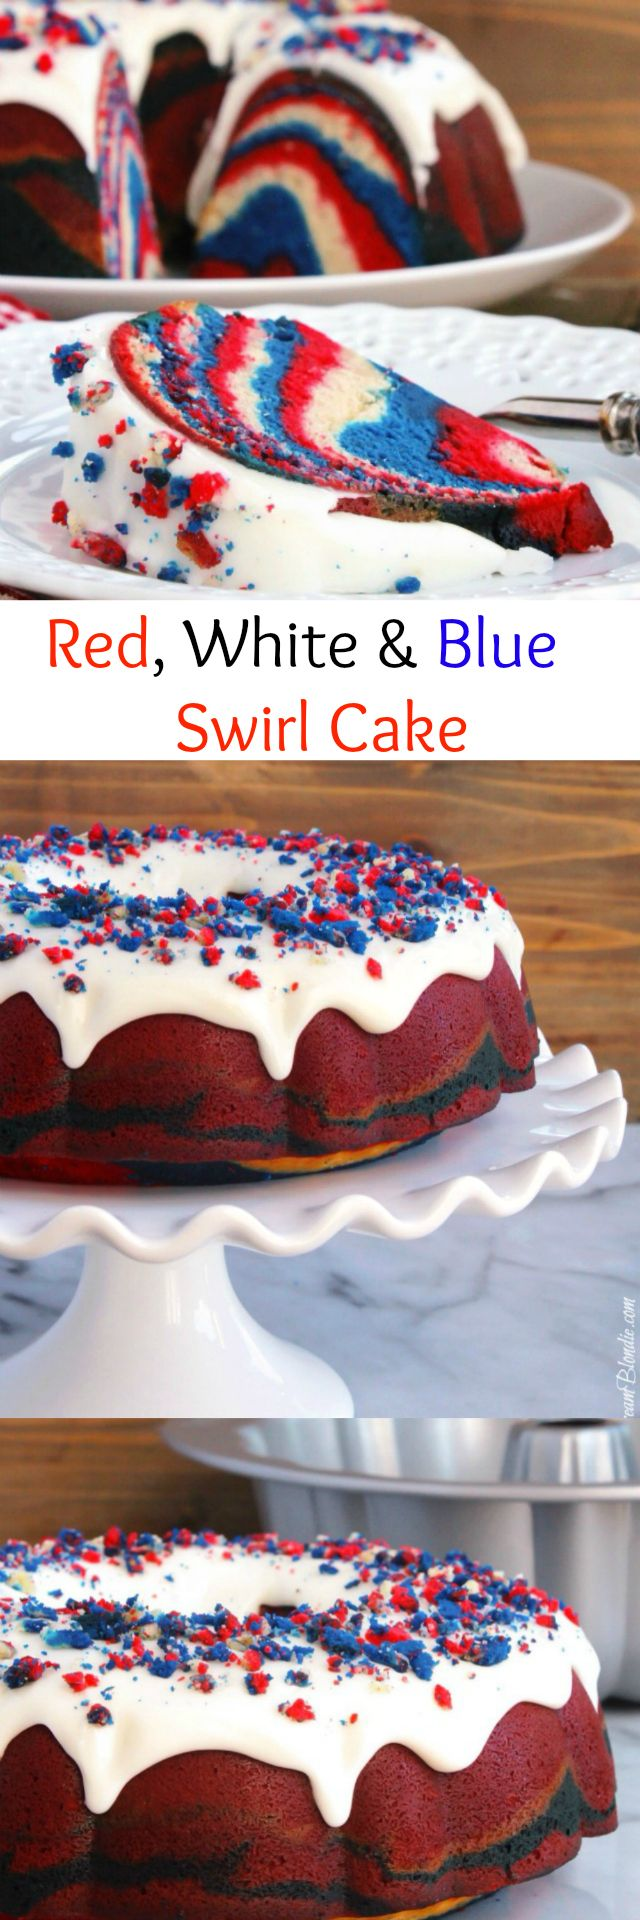 Red, White and Blue Swirl Cake - Take your summer celebrations to a new level with this red, white and blue swirl #cake complete with cake crumb sprinkles! | ButtercreamBondie.com